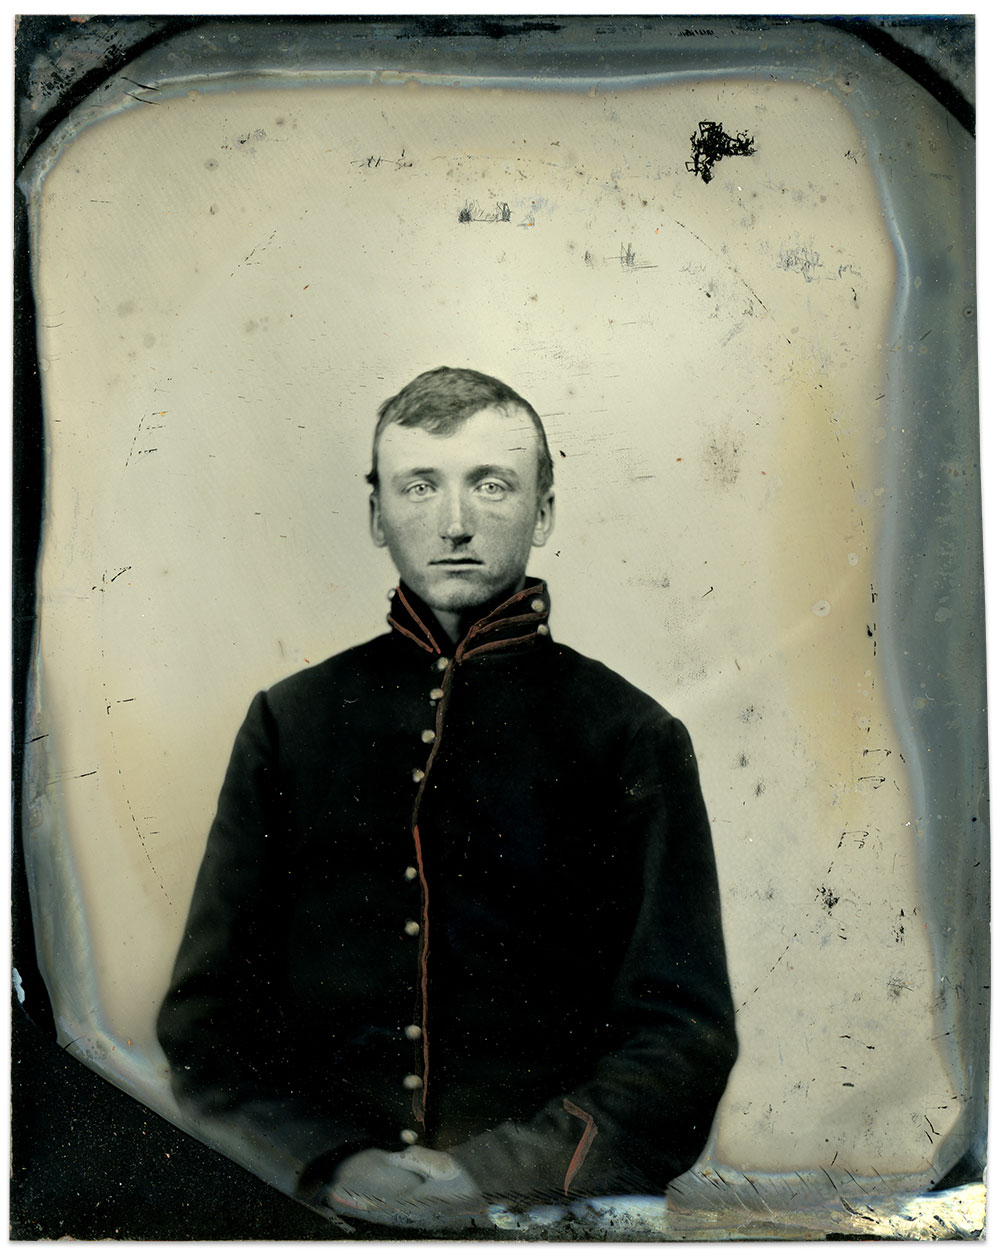 Billings about the time of his enlistment. Sixth-plate tintype by an anonymous photographer. Author's Collection.